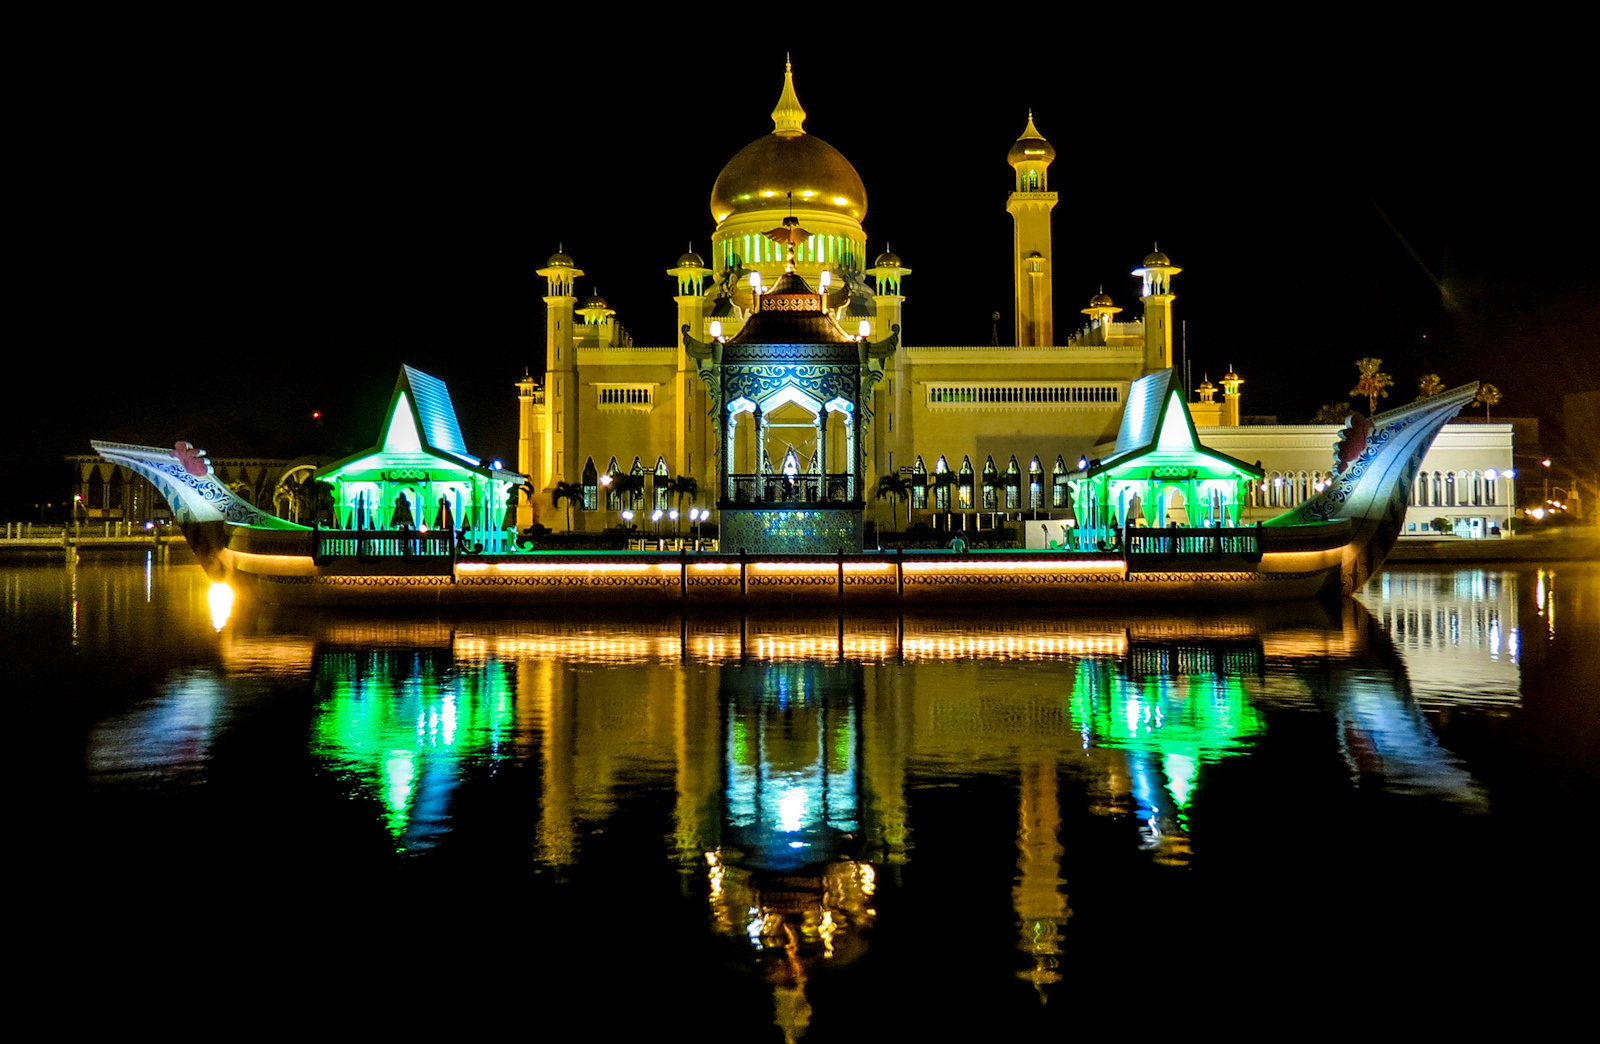 omar-ali-saifuddien-mosque-barge-night